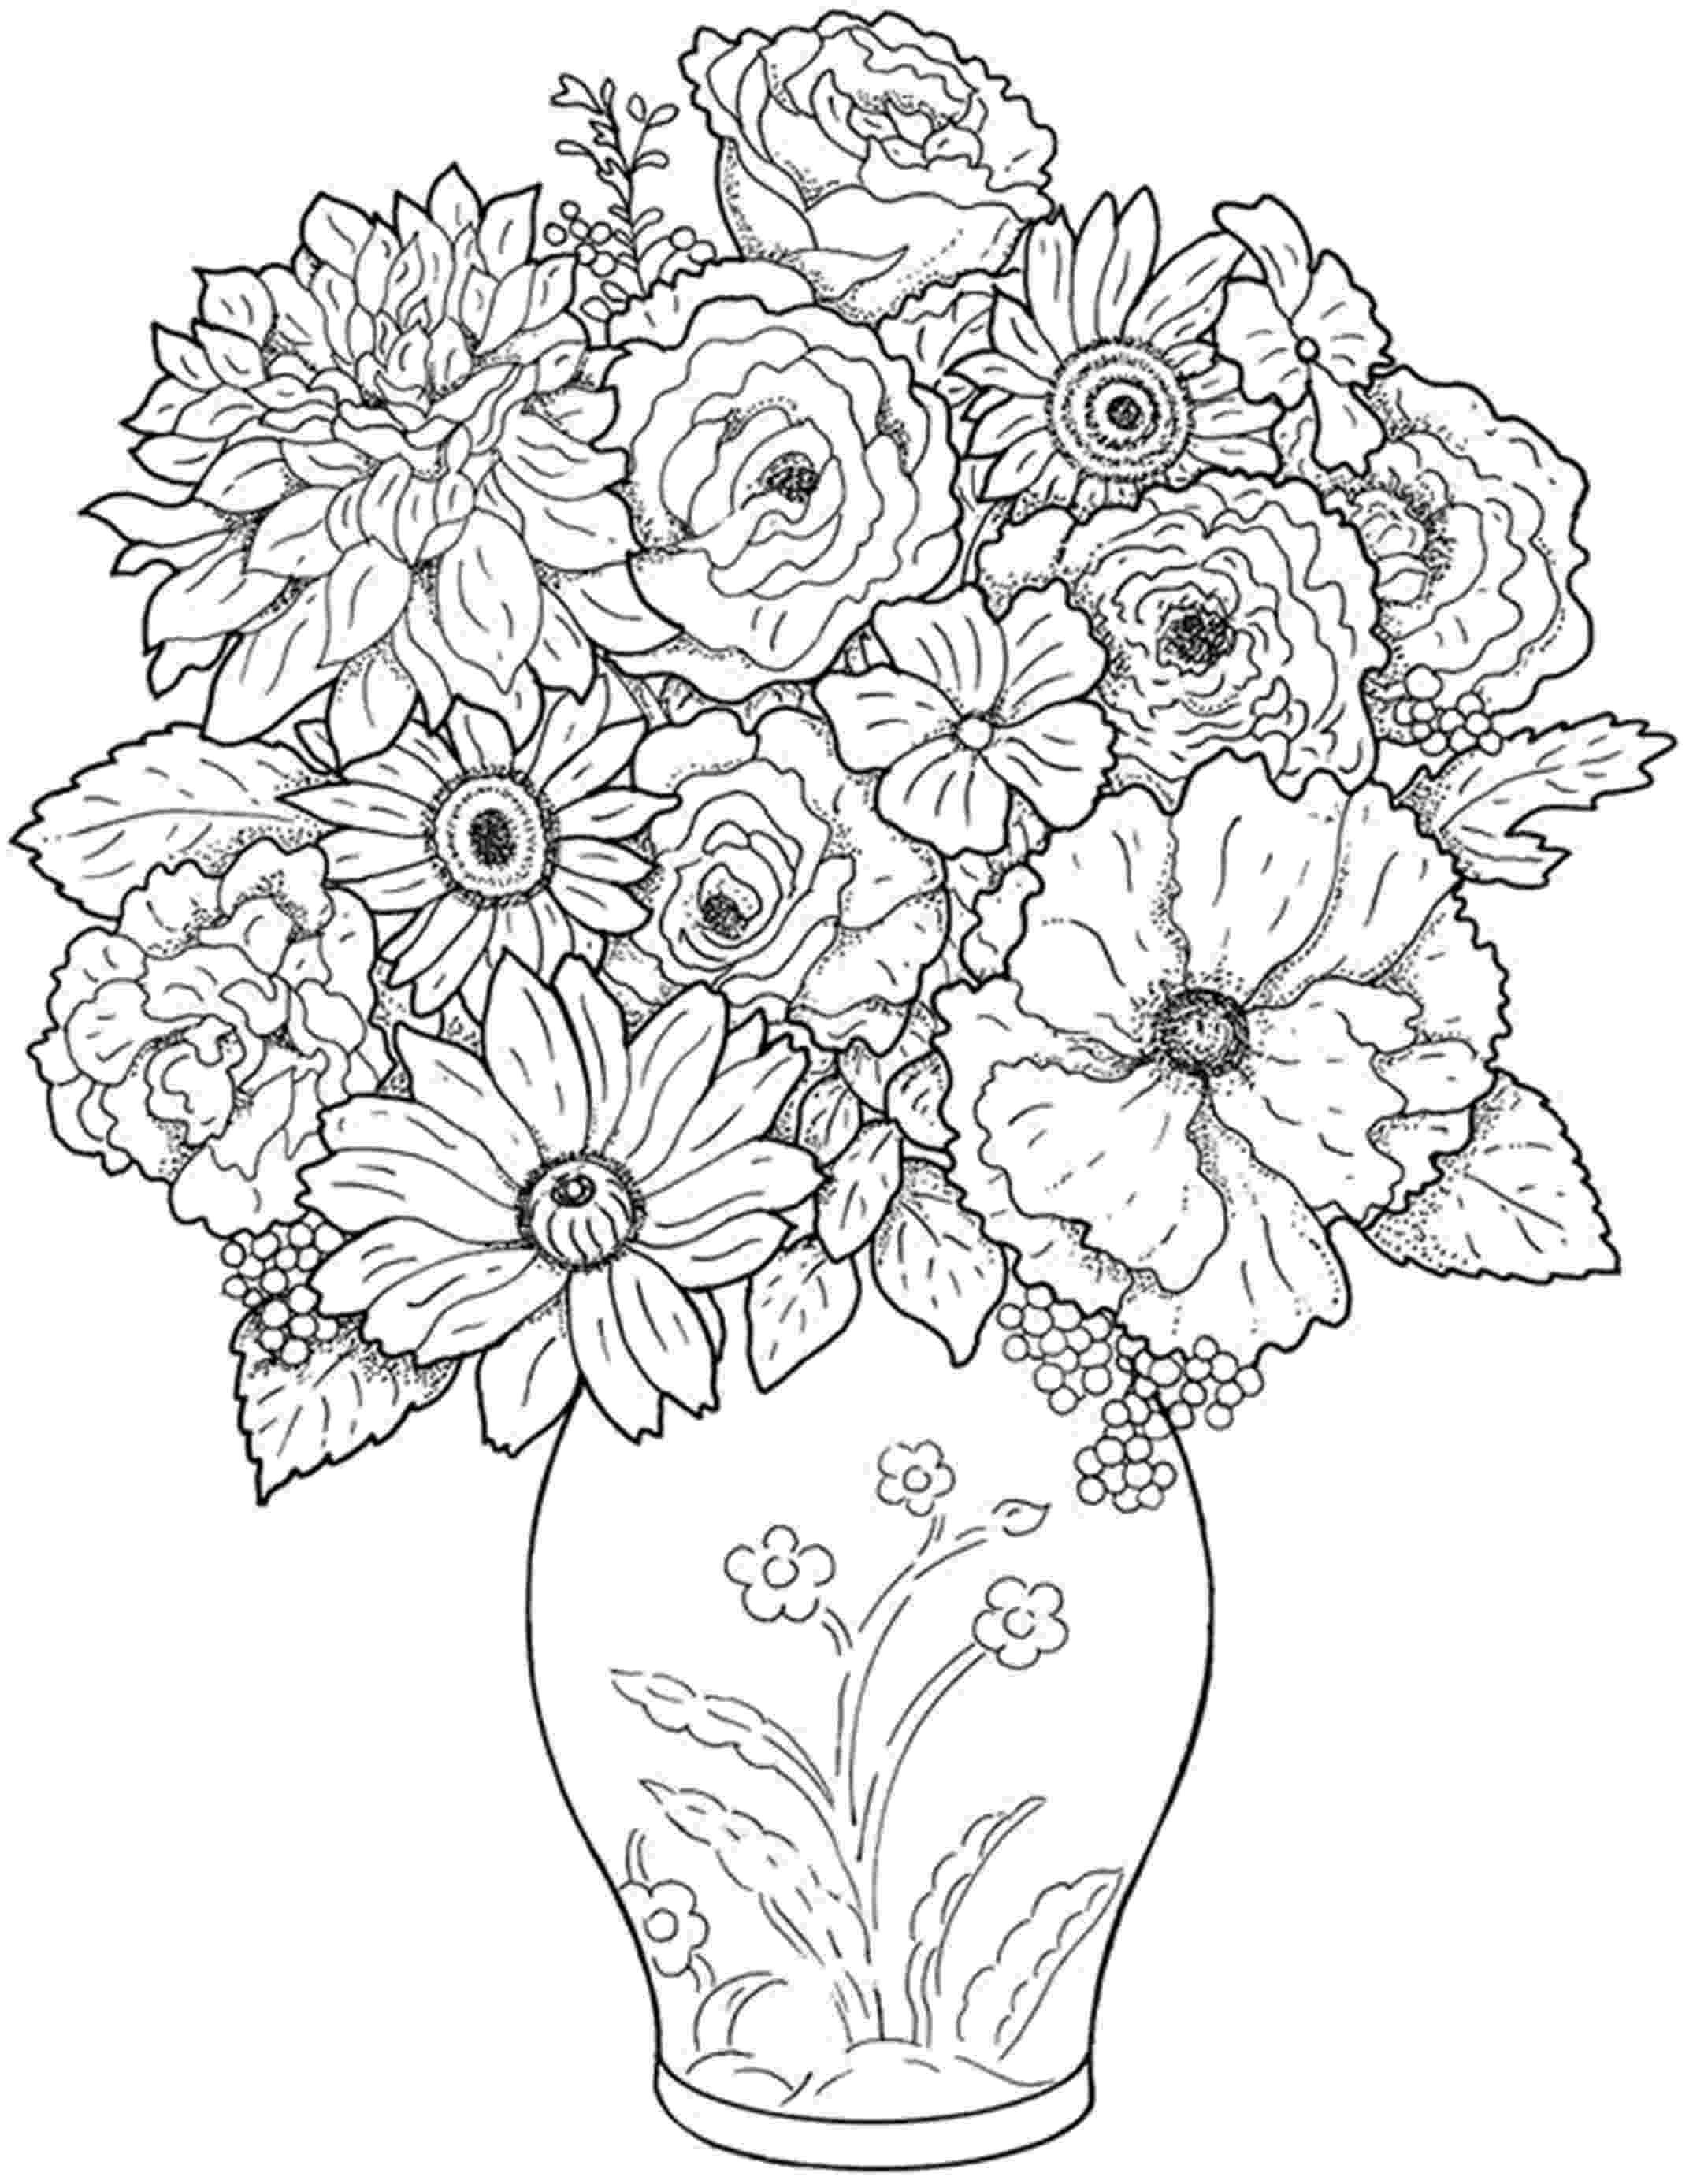 printable flower coloring pages free printable flower coloring pages for kids best flower printable coloring pages 1 1